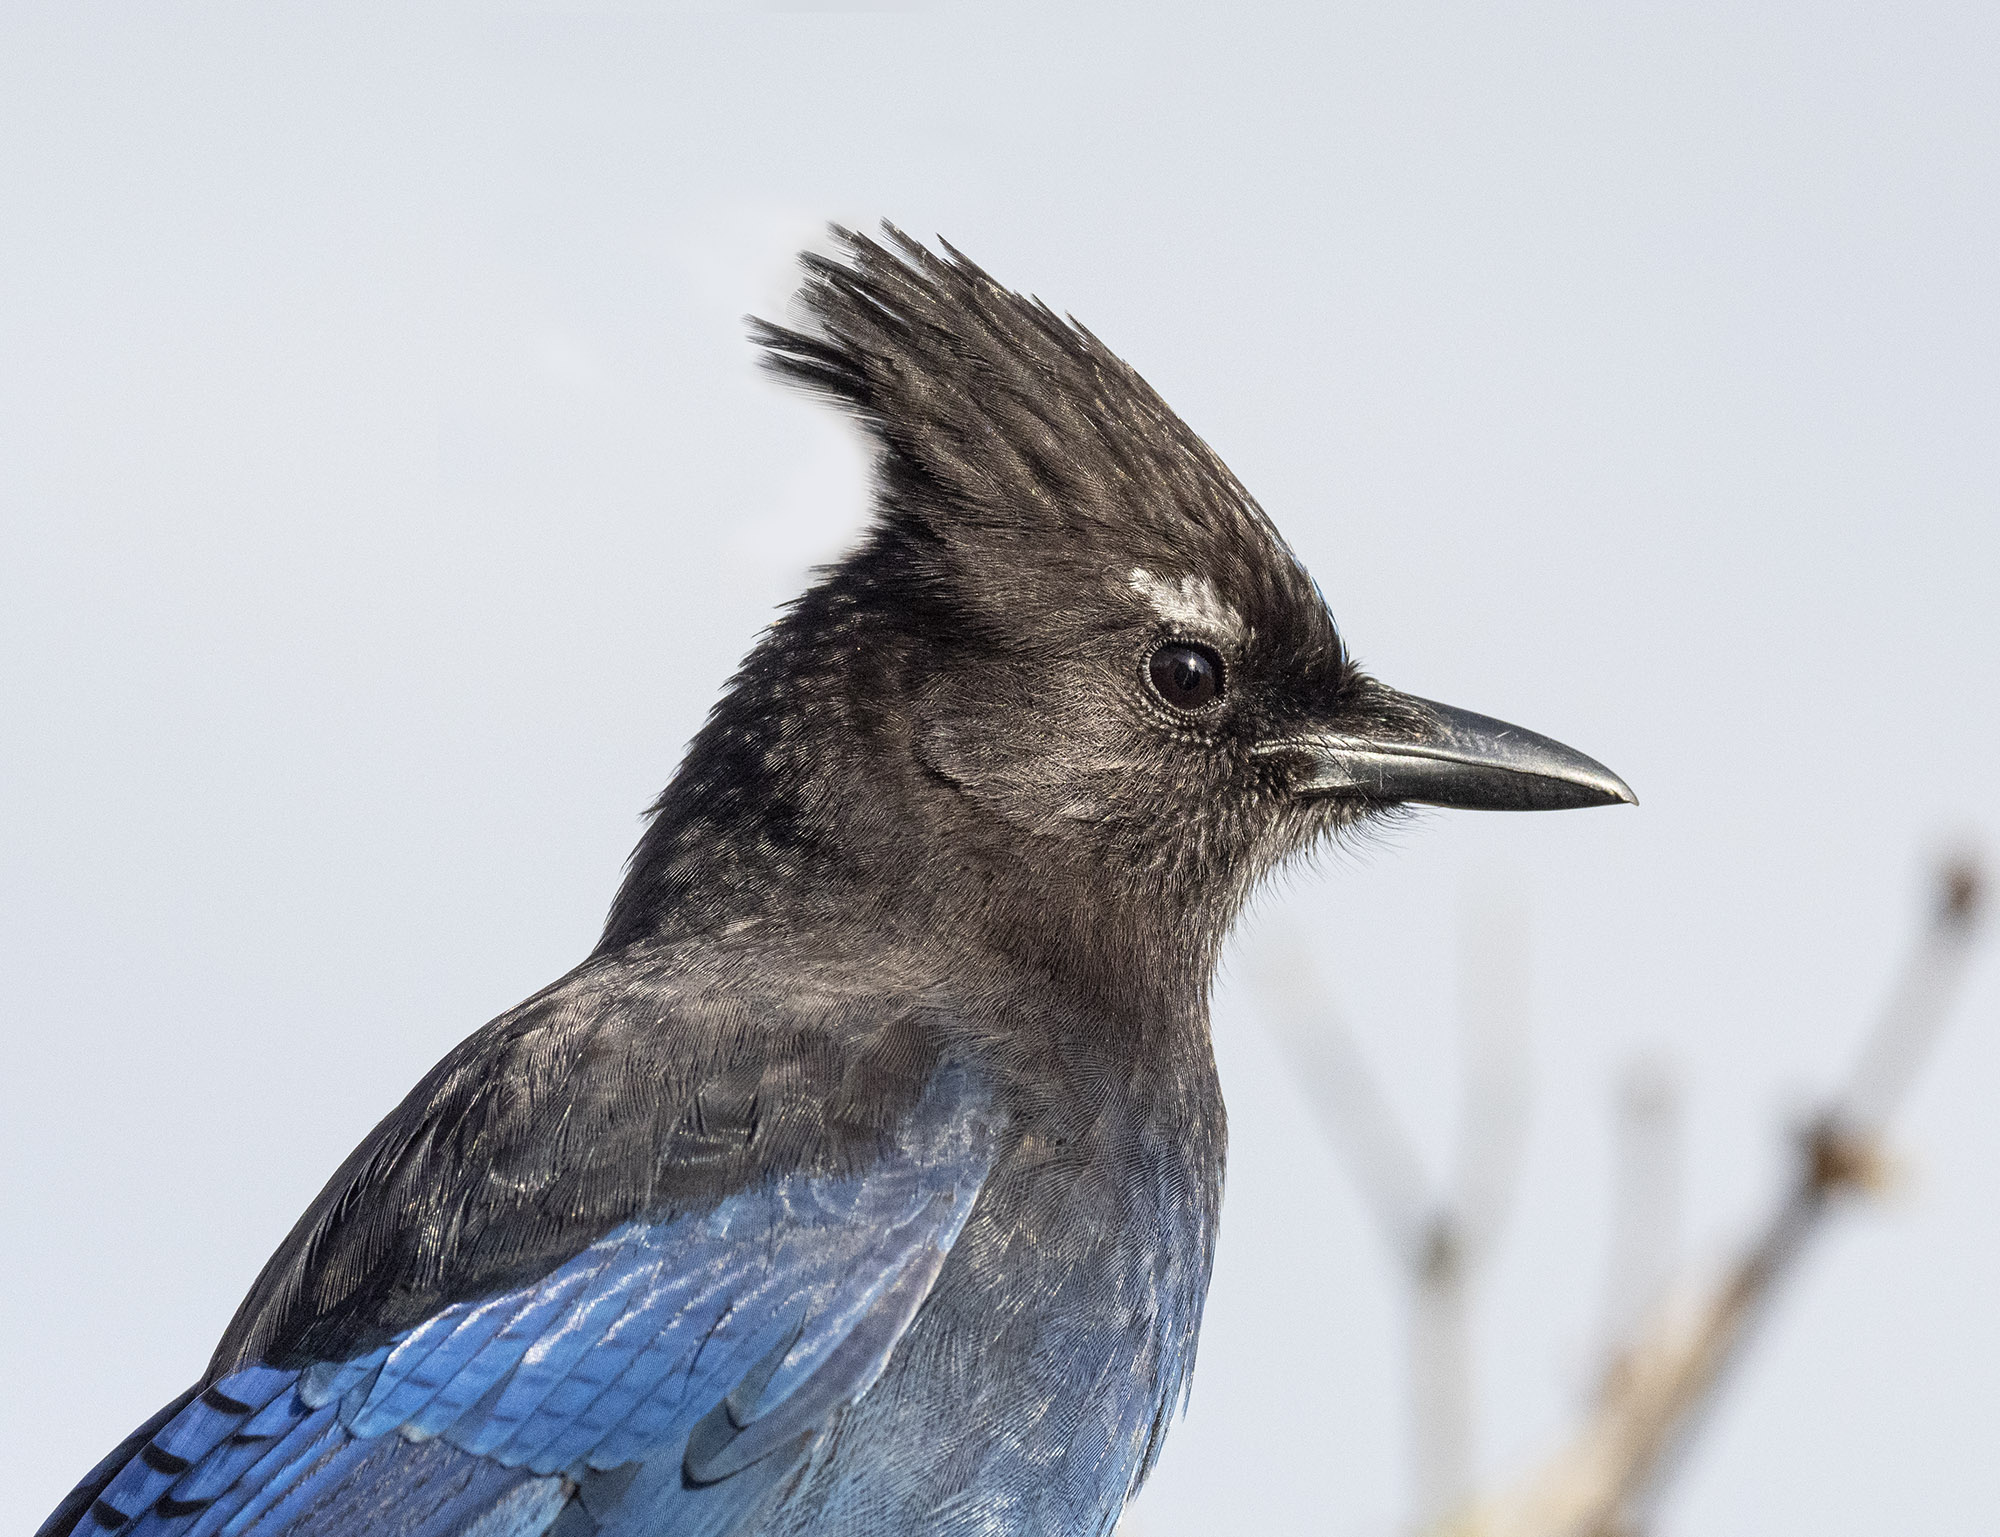 Steller's Jay with Eyebrows